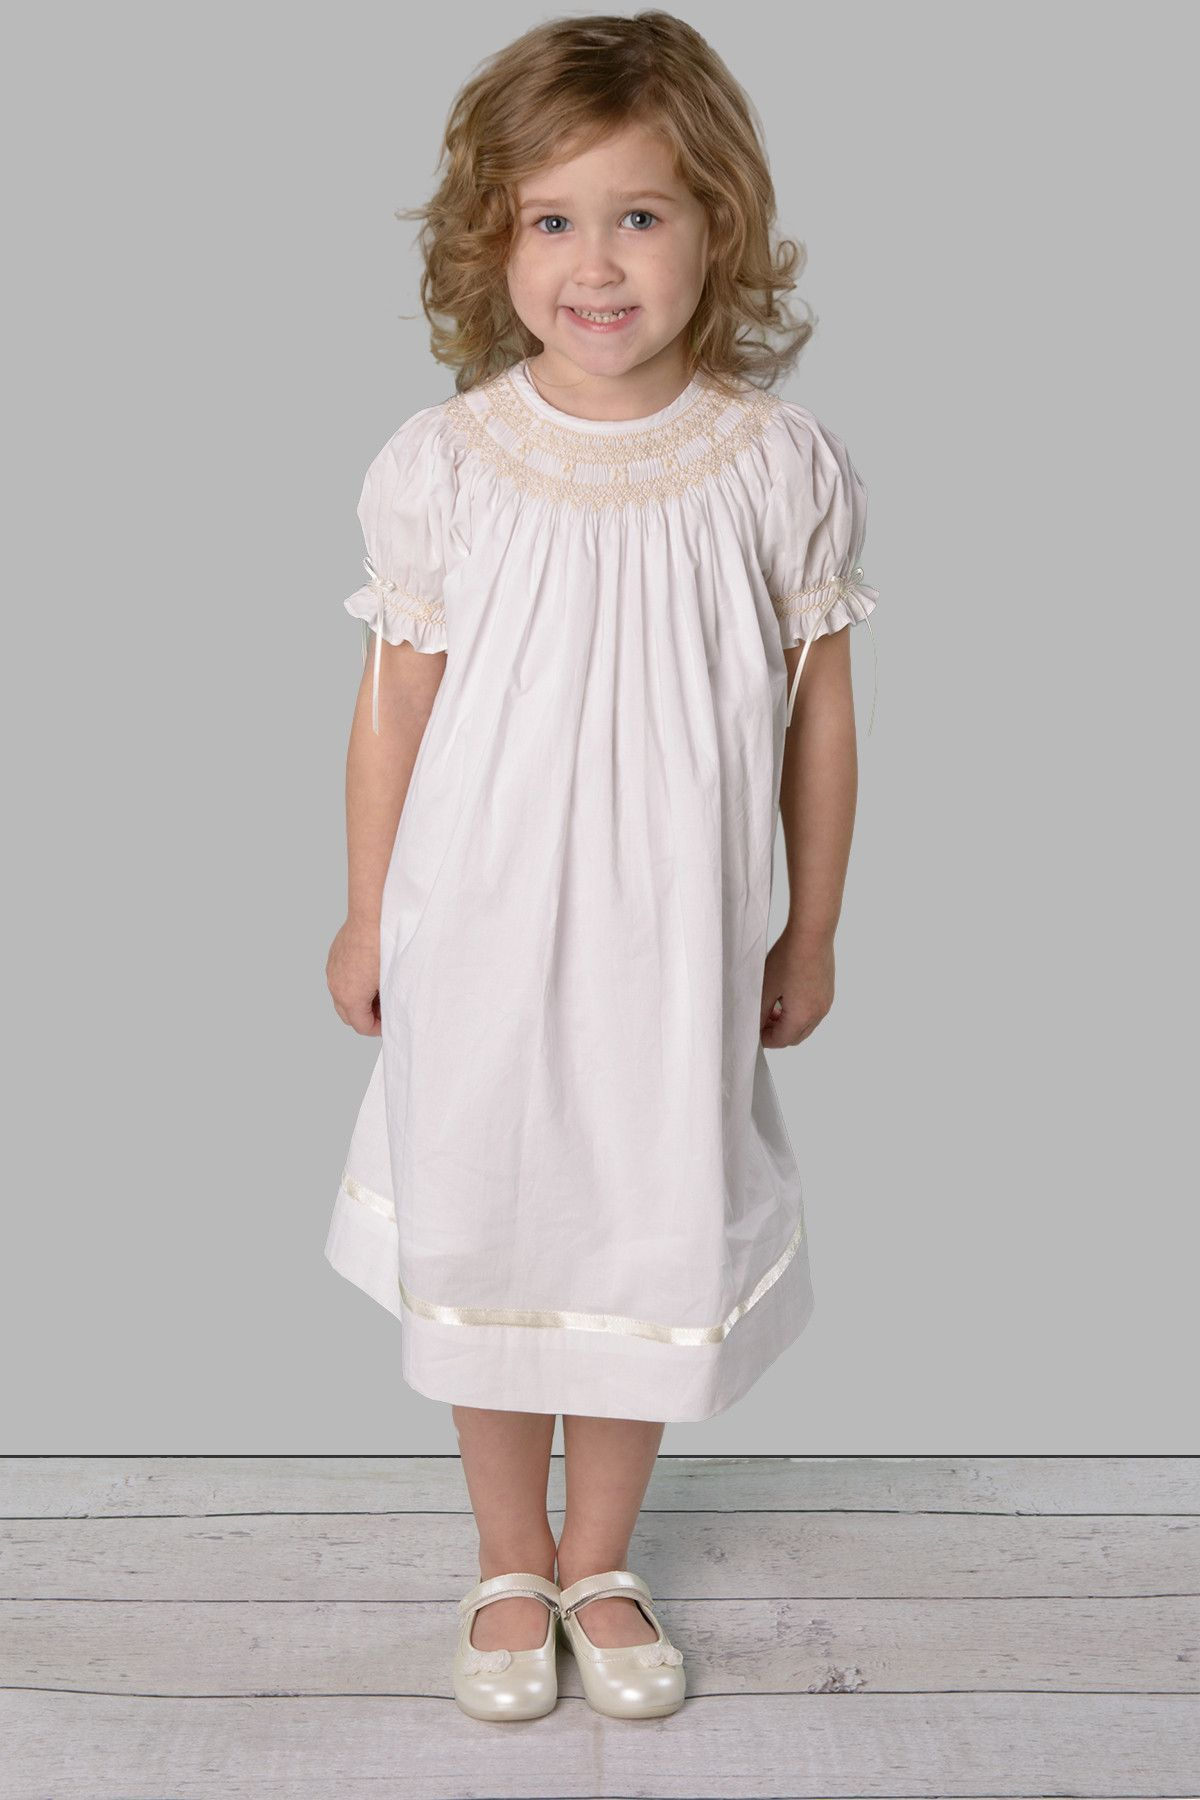 Cotton White Dress Hand Smocked And Embroidery With Pearls And